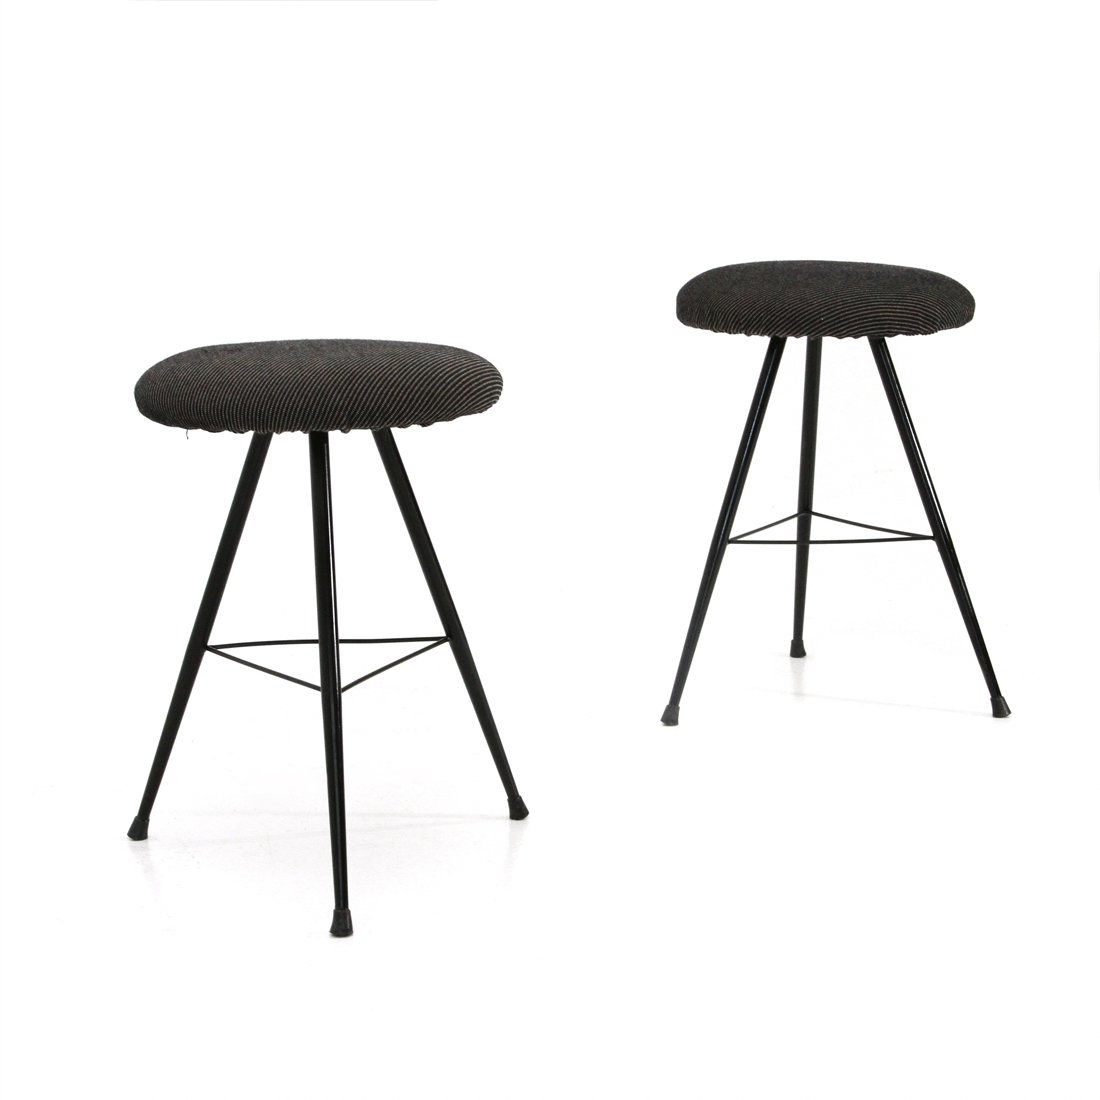 Astounding Pair Of Italian Midcentury Black Metal Stools 1950S Ocoug Best Dining Table And Chair Ideas Images Ocougorg